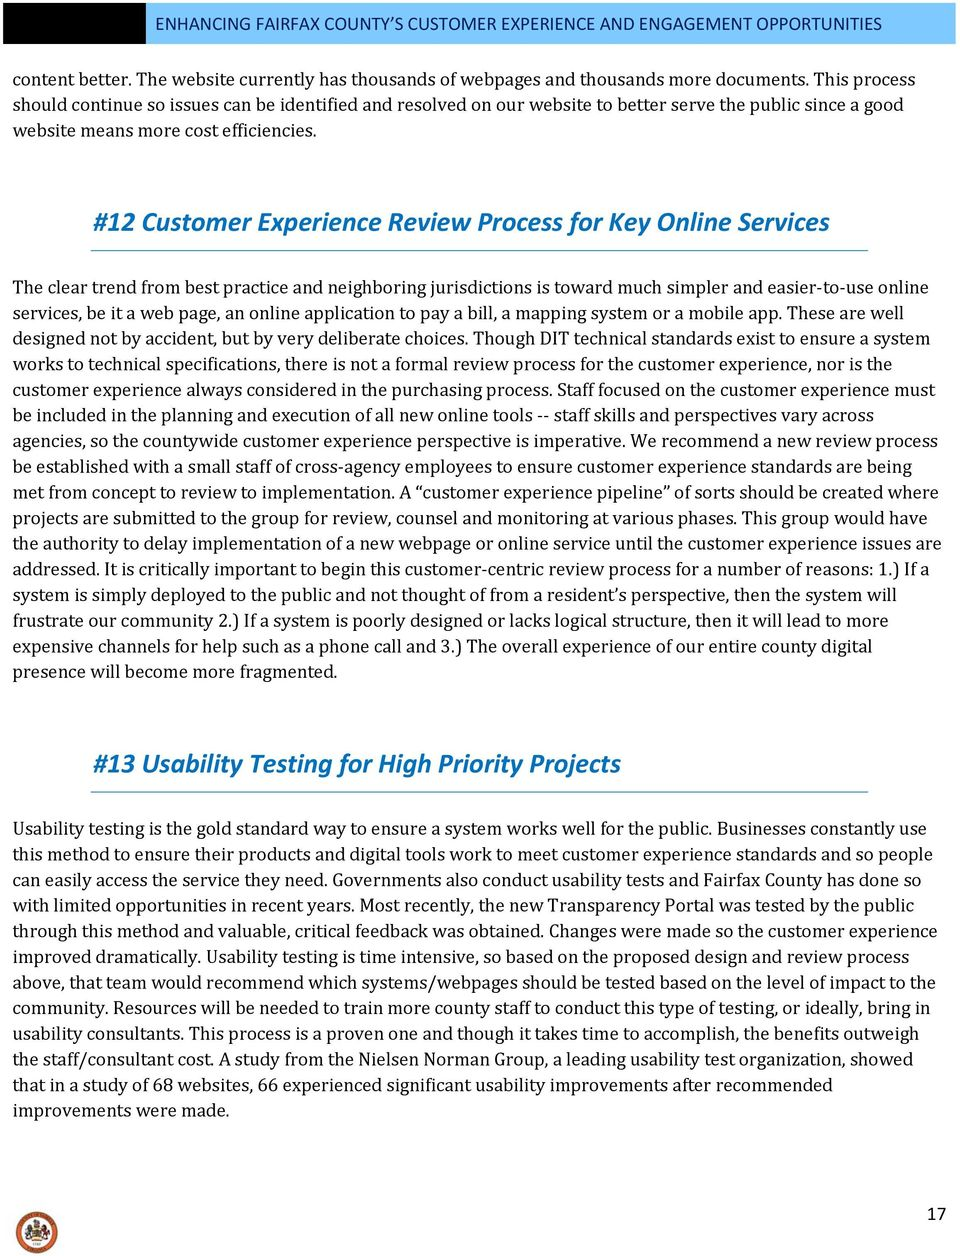 #12 Customer Experience Review Process for Key Online Services The clear trend from best practice and neighboring jurisdictions is toward much simpler and easier to use online services, be it a web